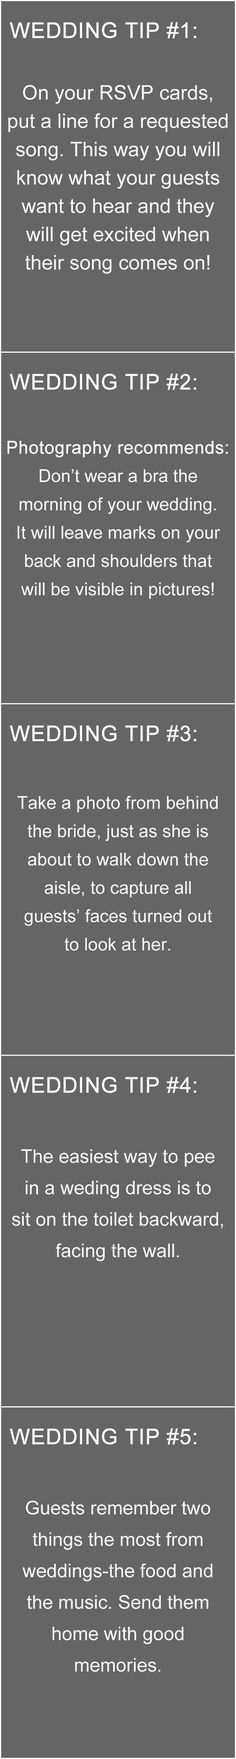 top 10 wedding tip ideas for your big day